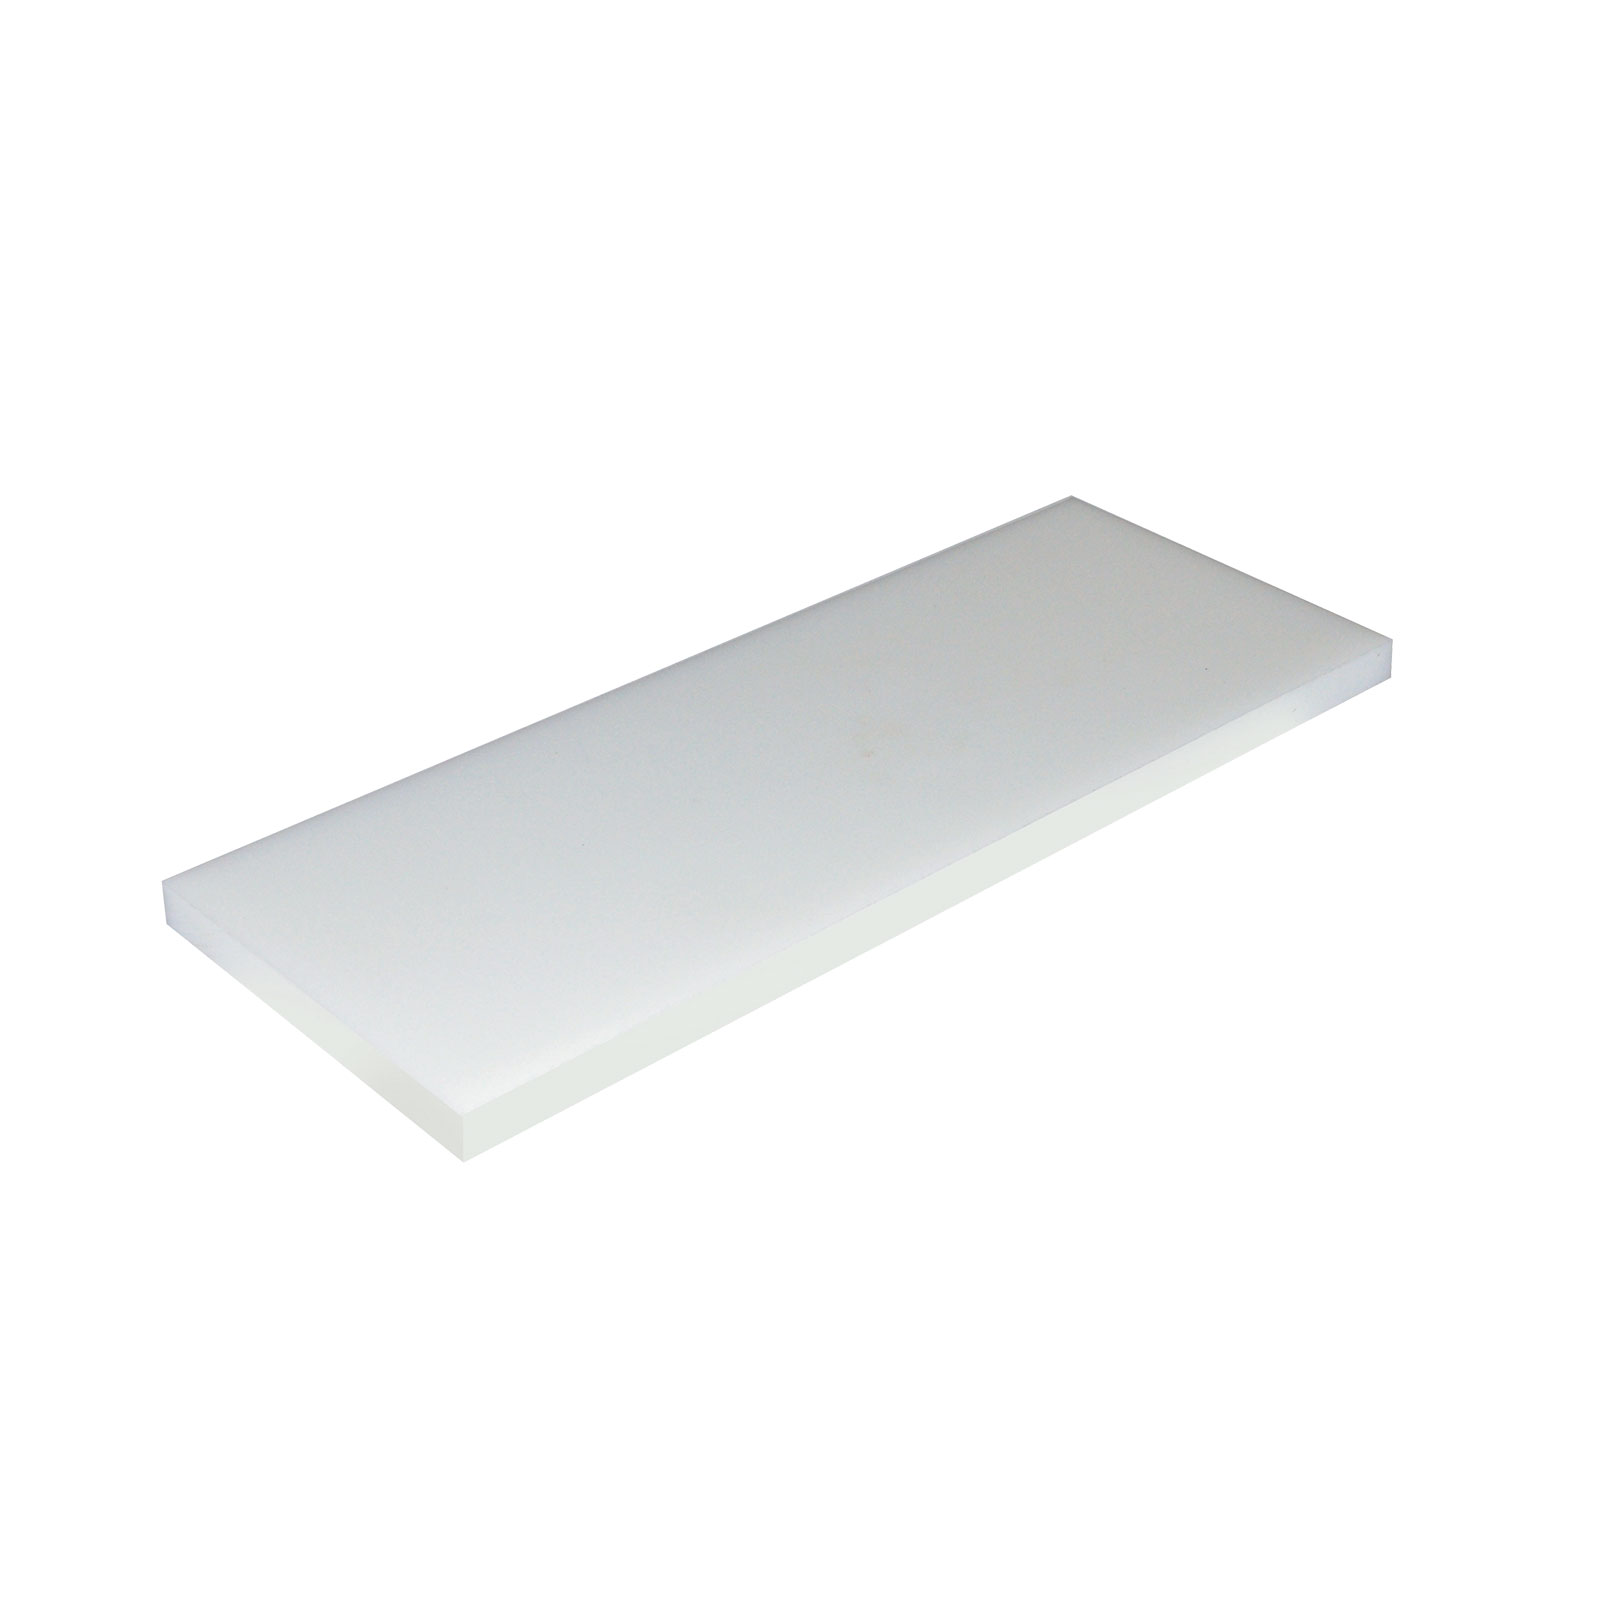 BK Resources HDPE-N-3/4-55121 cutting board, plastic